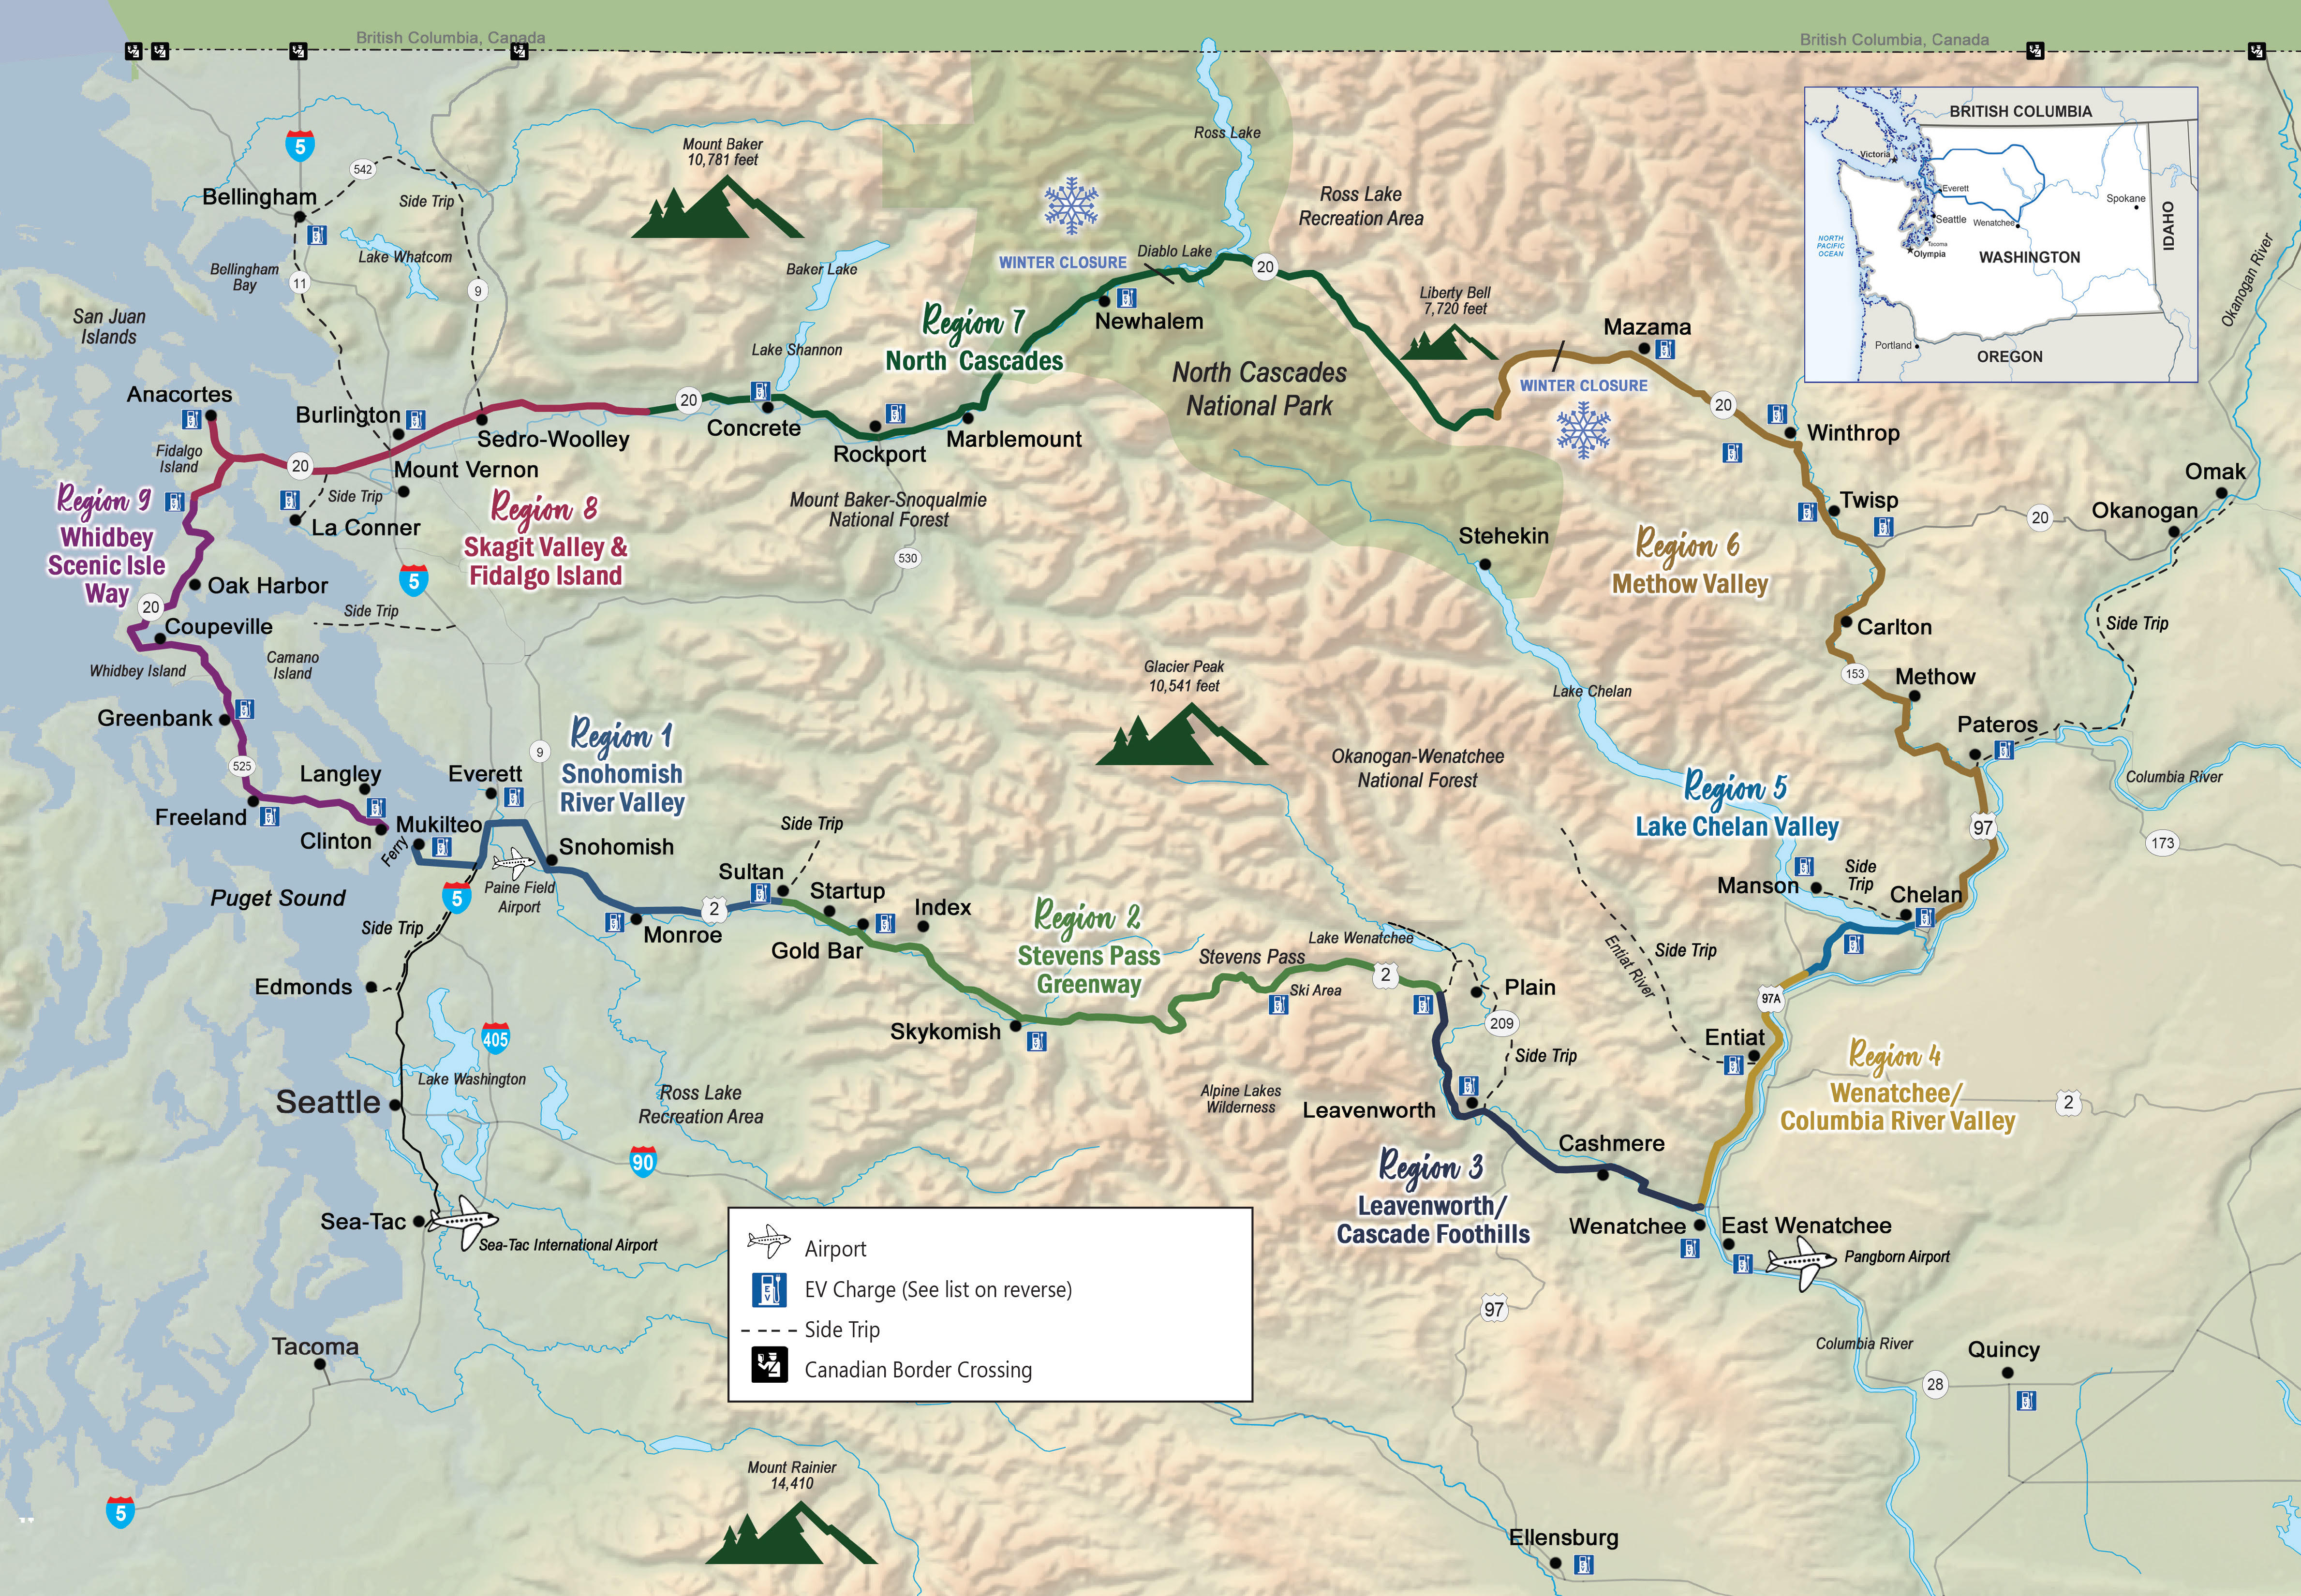 Washington's Ultimate Road Trip - The Cascade Loop Scenic Byway on